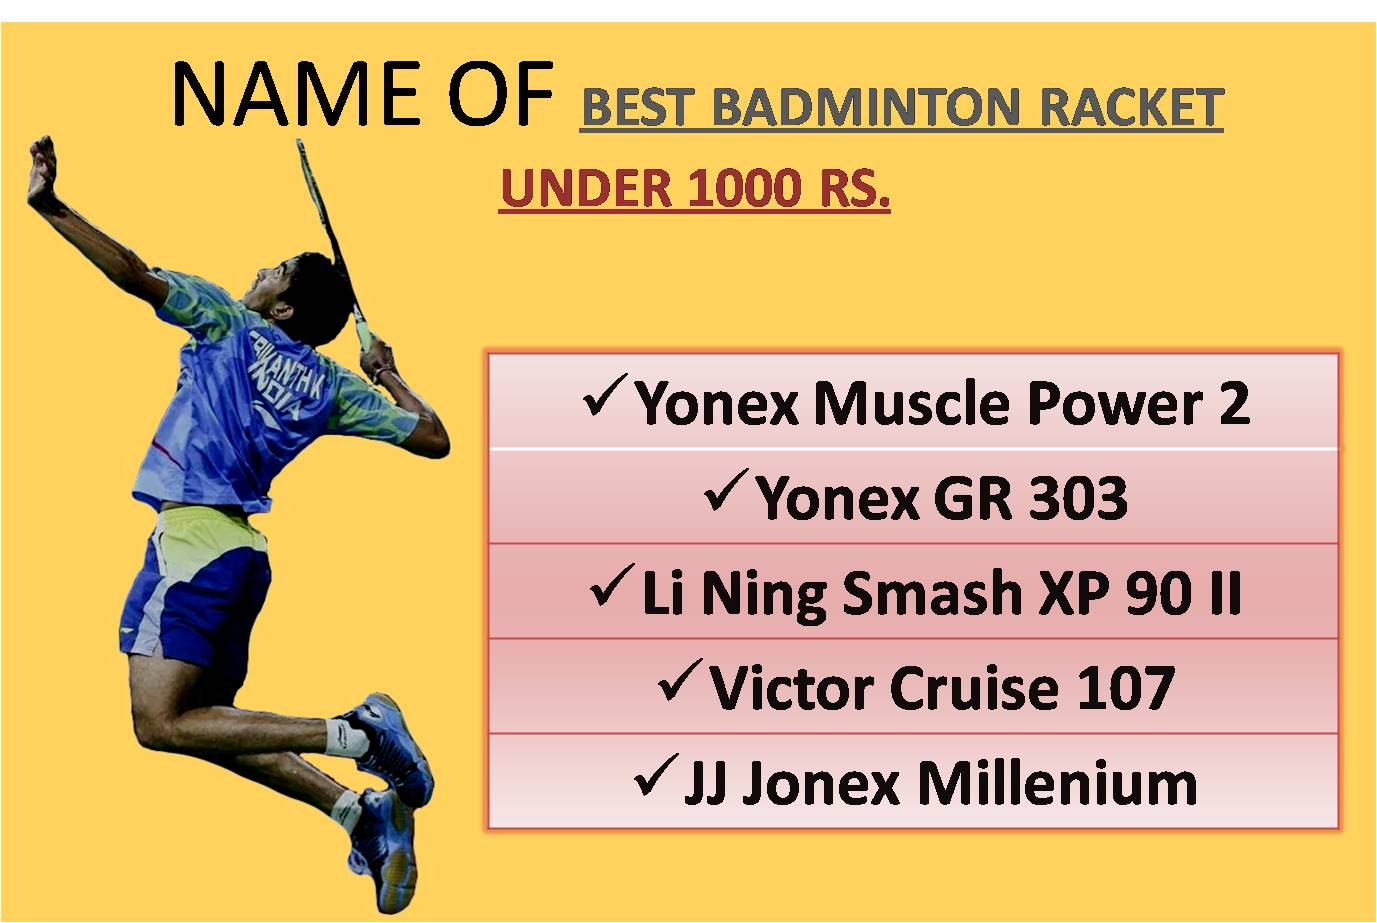 NAME OF BEST BADMINTON RACKET UNDER 1000 RS